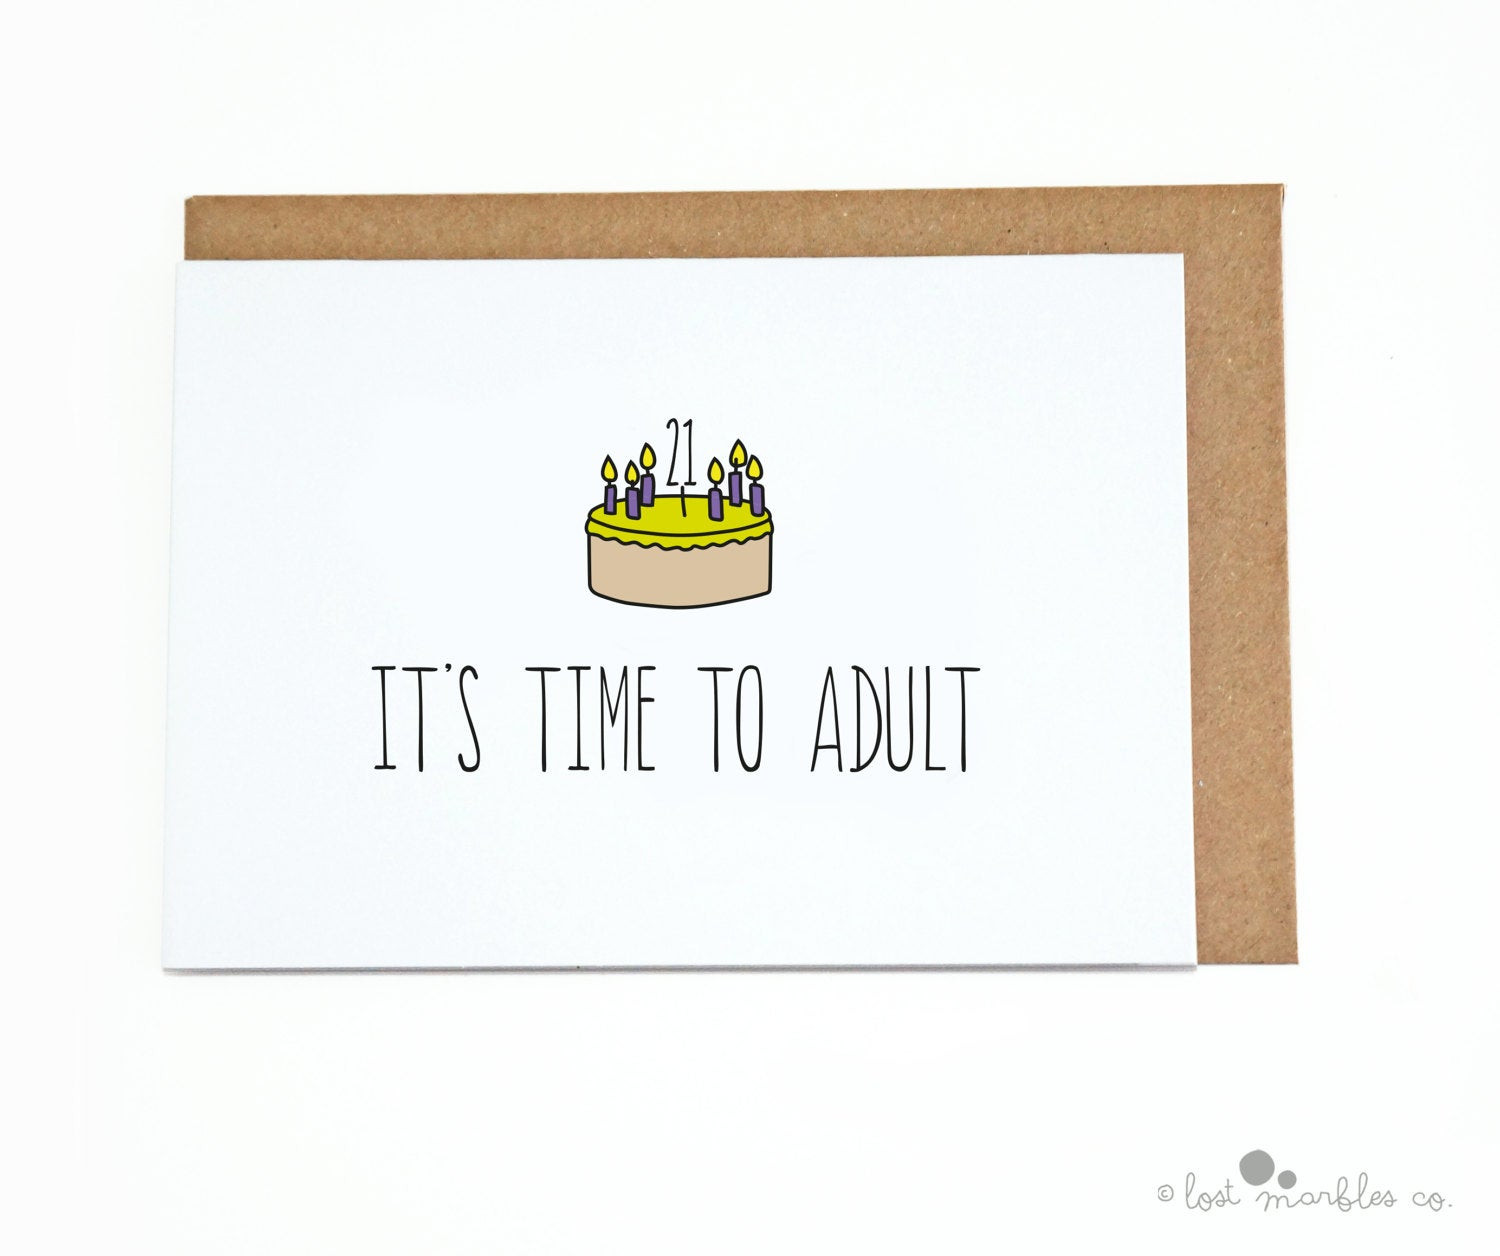 Best ideas about Funny 21st Birthday Cards . Save or Pin 21st Birthday Card Her Birthday His Birthday Funny Now.